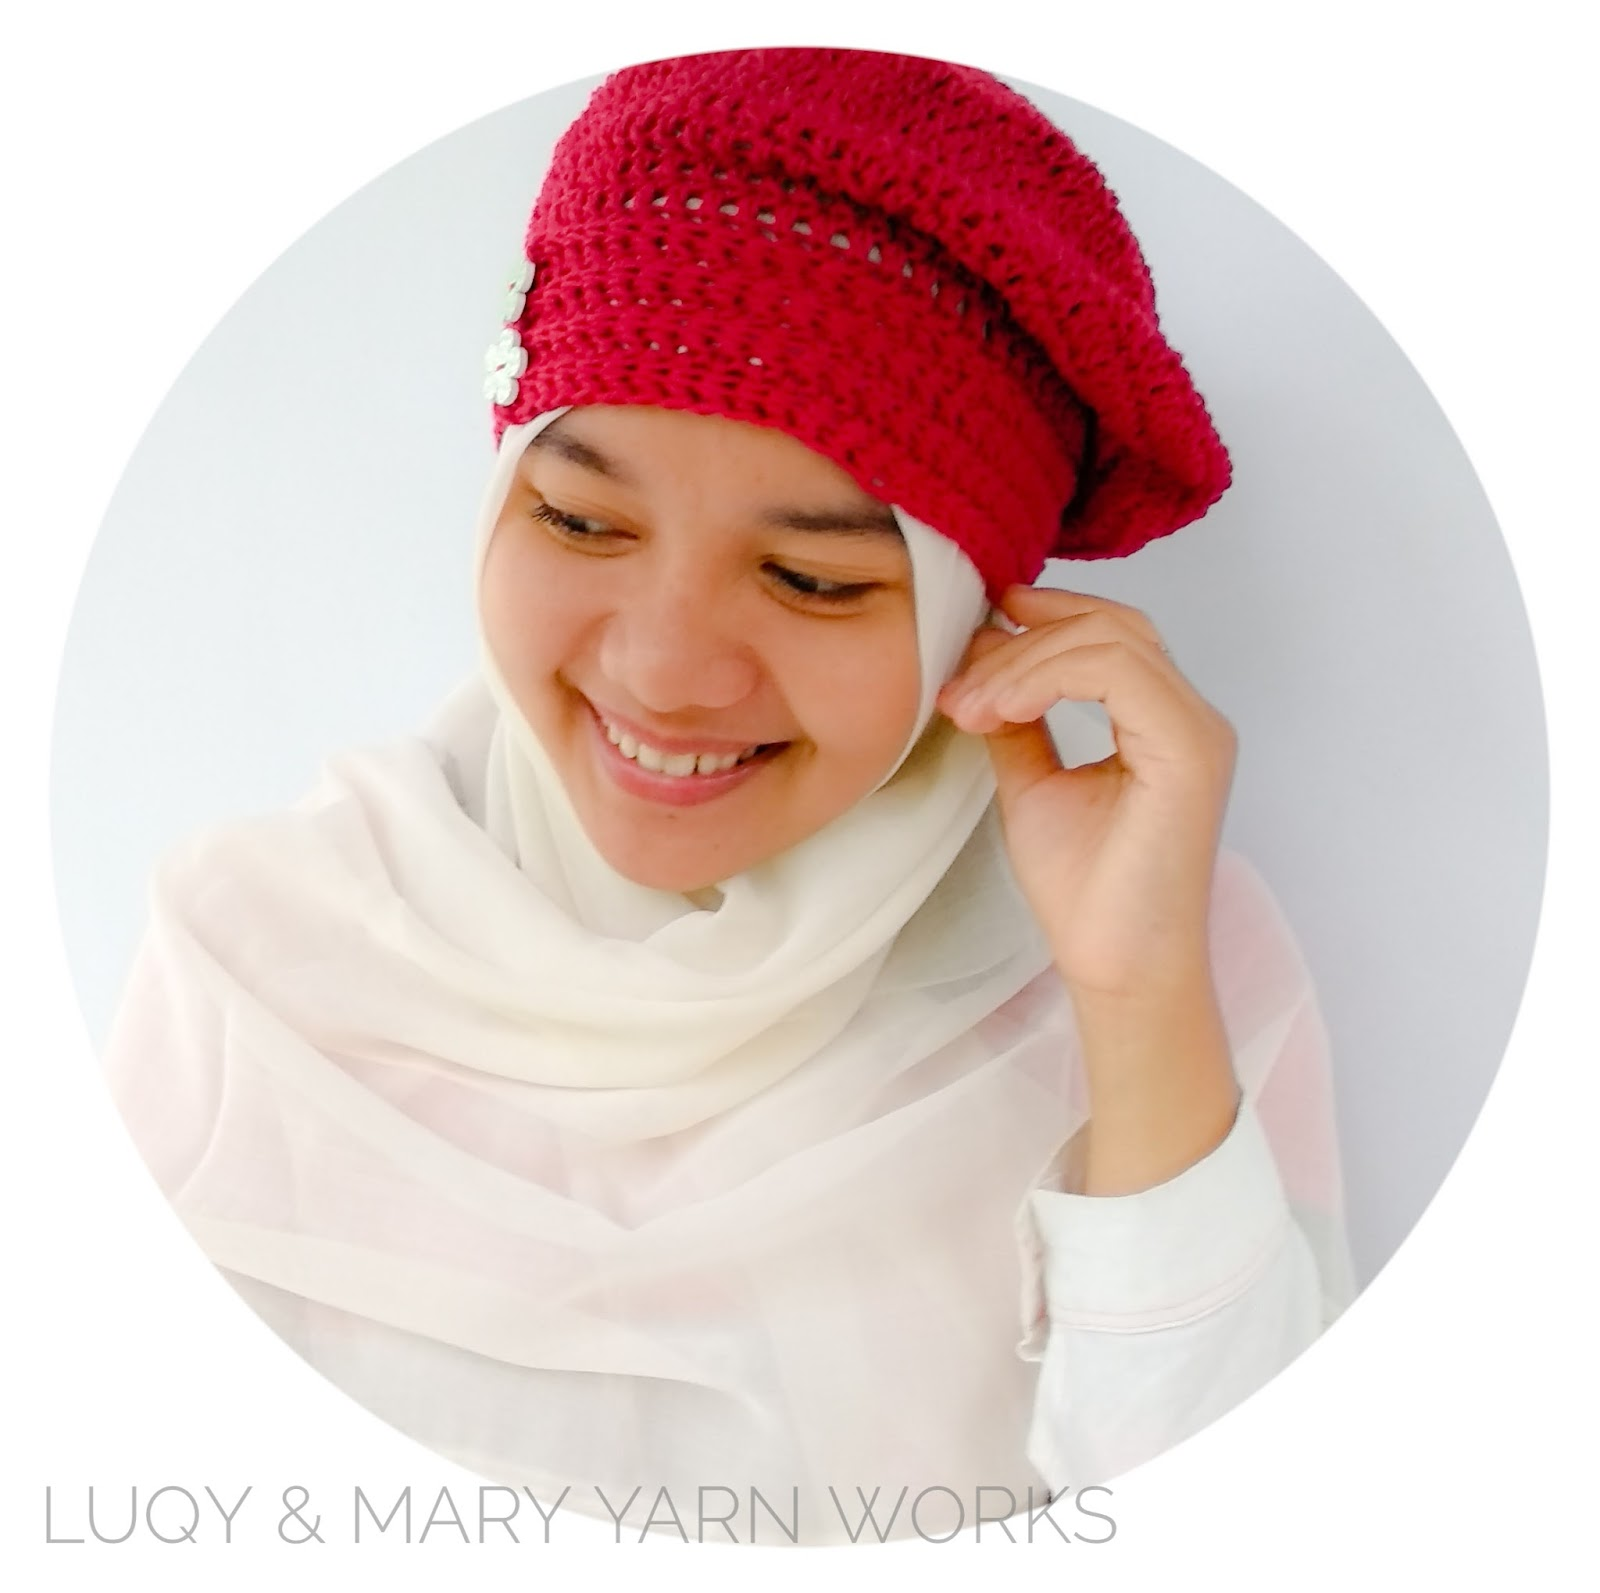 Luqy and Mary YarnWorks: Lady Rose Girl Beret - Free Easy Pattern